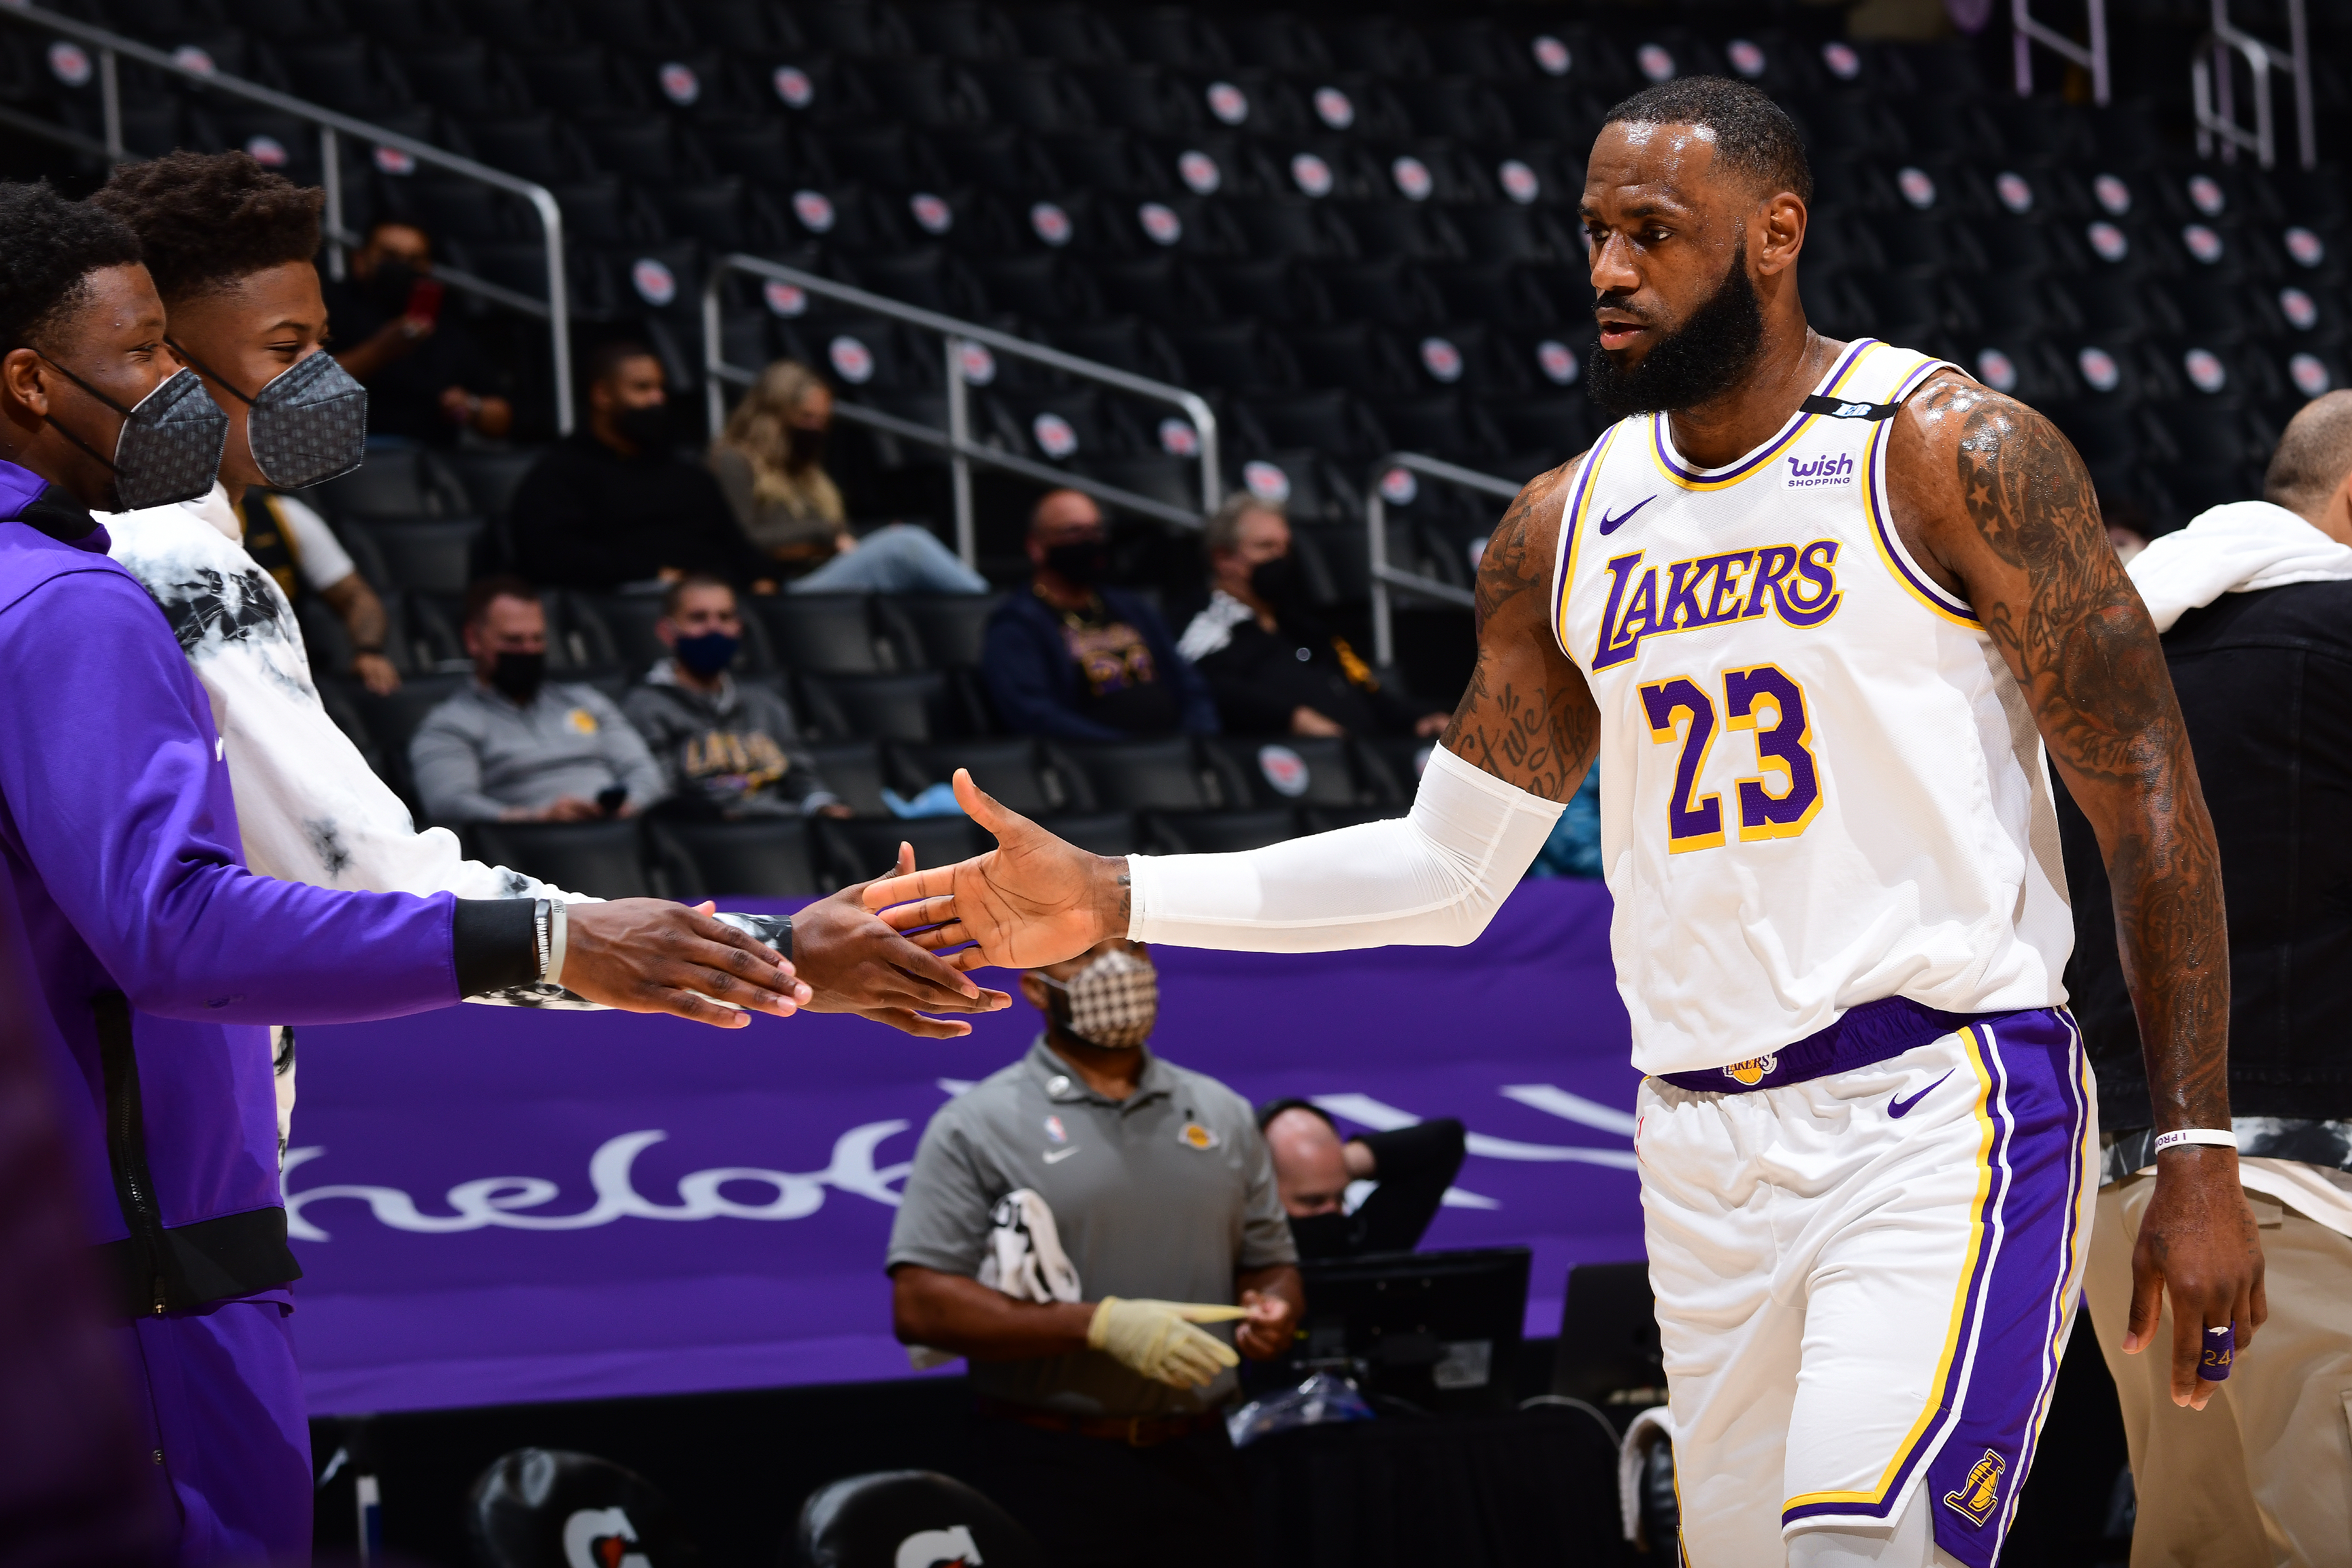 LeBron James of the Los Angeles Lakers high fives Kostas Antetokounmpo of the Los Angeles Lakers during the game against the Toronto Raptors on May 2, 2021 at STAPLES Center in Los Angeles, California.